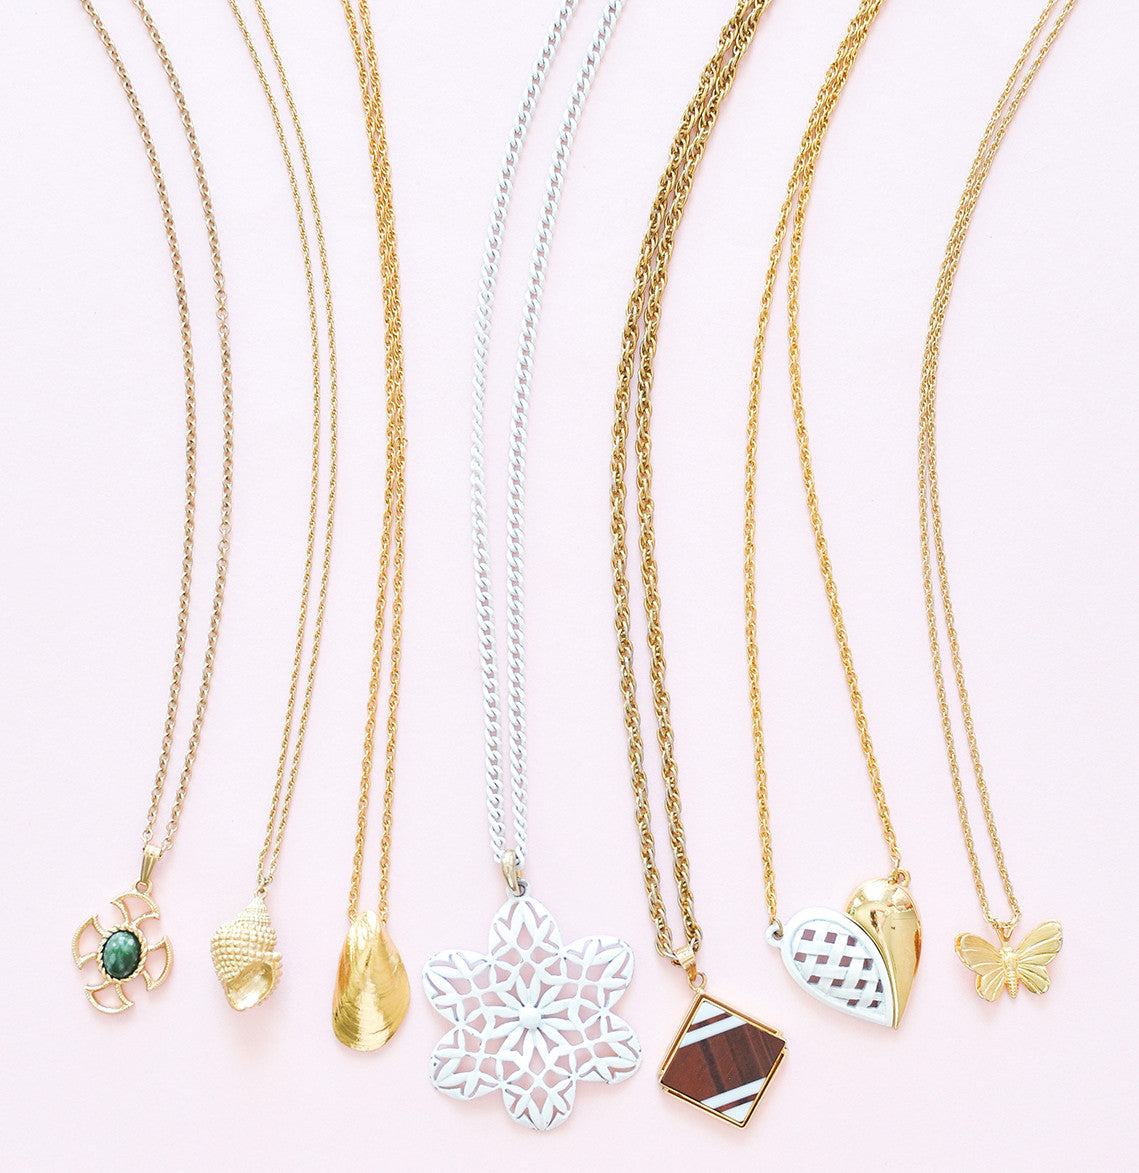 dainty pendant necklaces